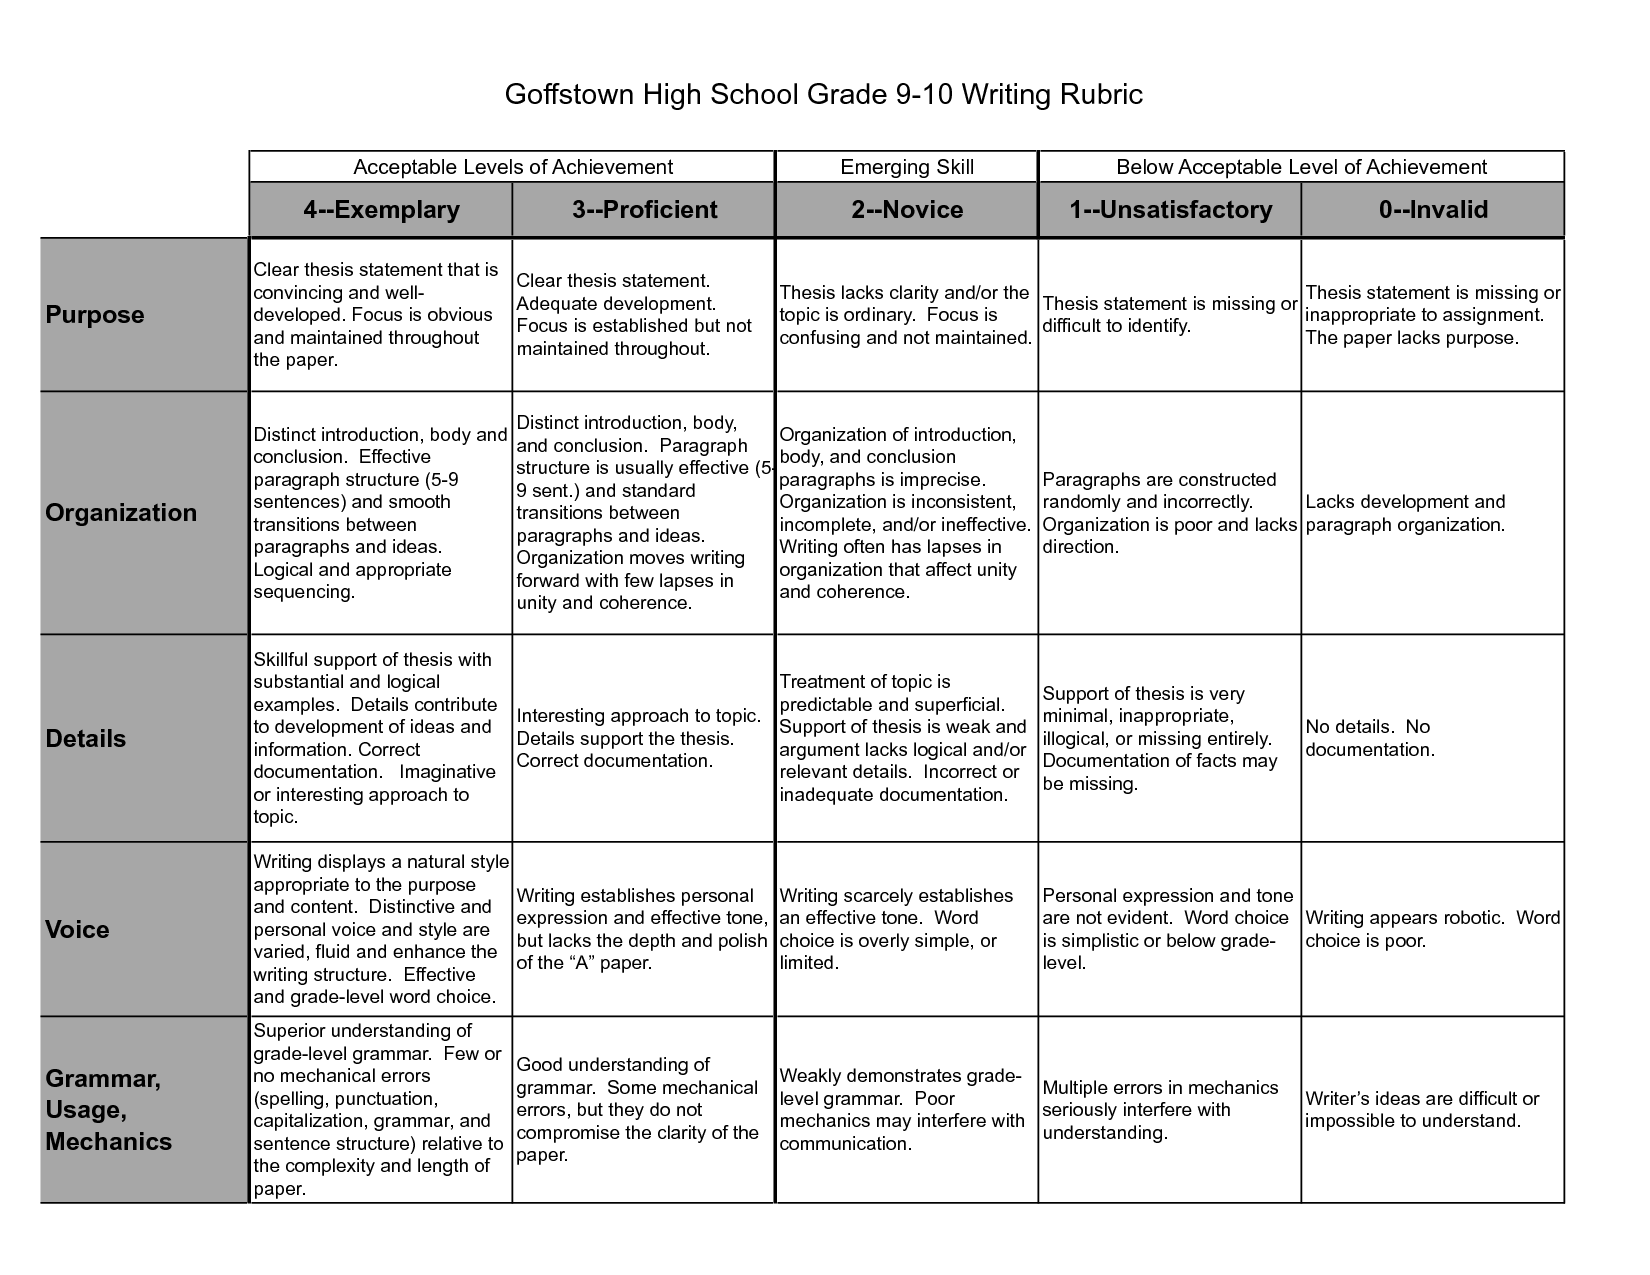 college writing rubrics essays Sample writing rubrics statement on excellent college writing the second is a rubric provided by for the faculty writing assessment of essays.